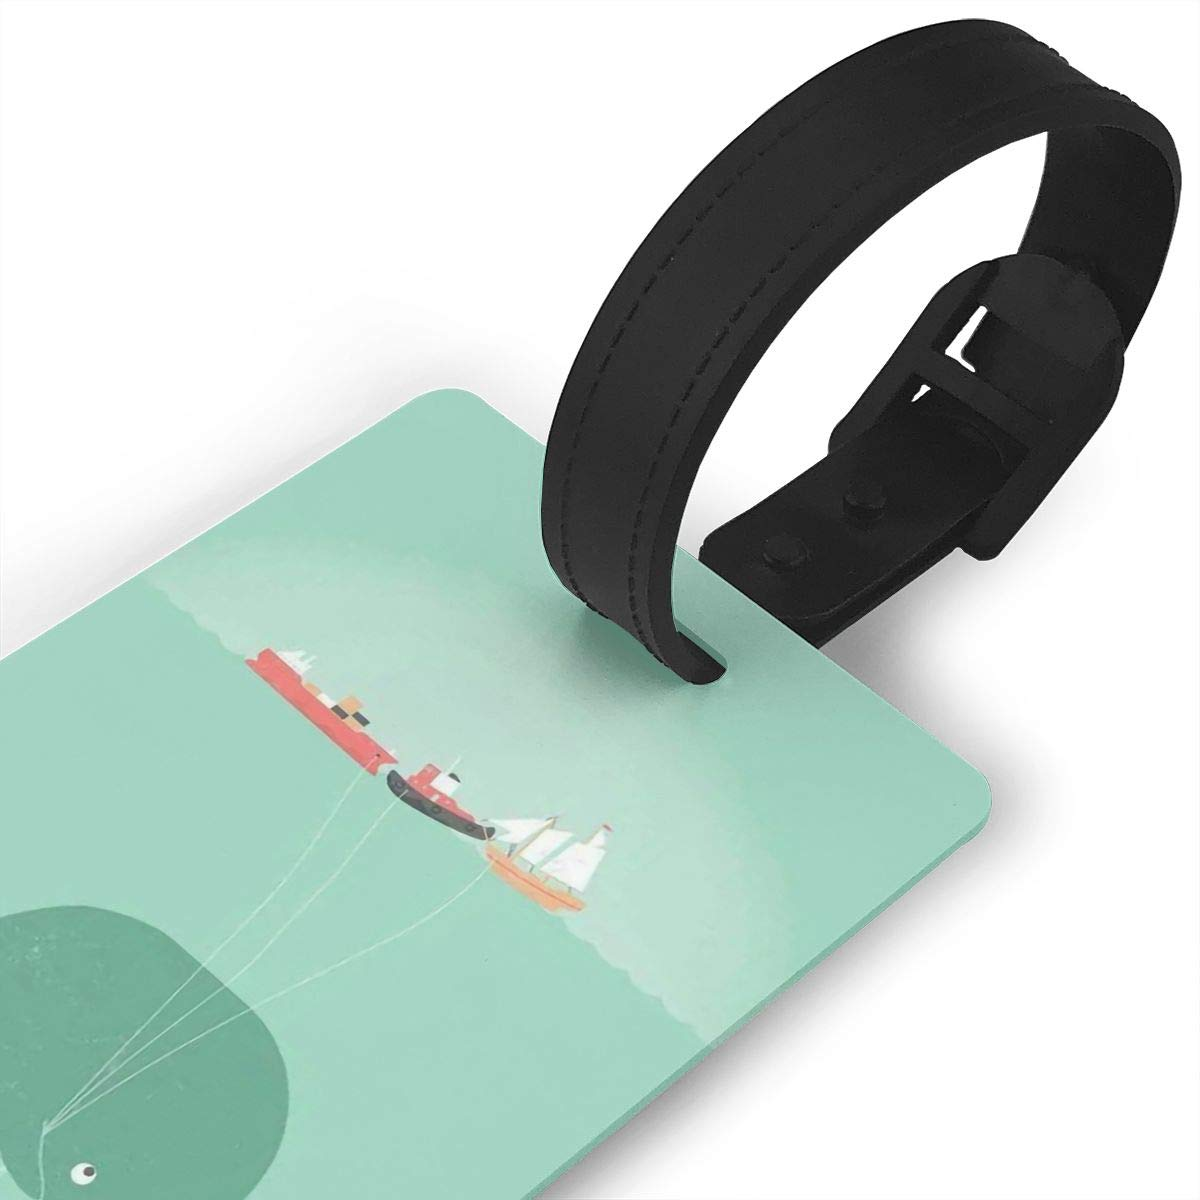 Whales Handbag Tag For Suitcase Bag Accessories 2 Pack Luggage Tags